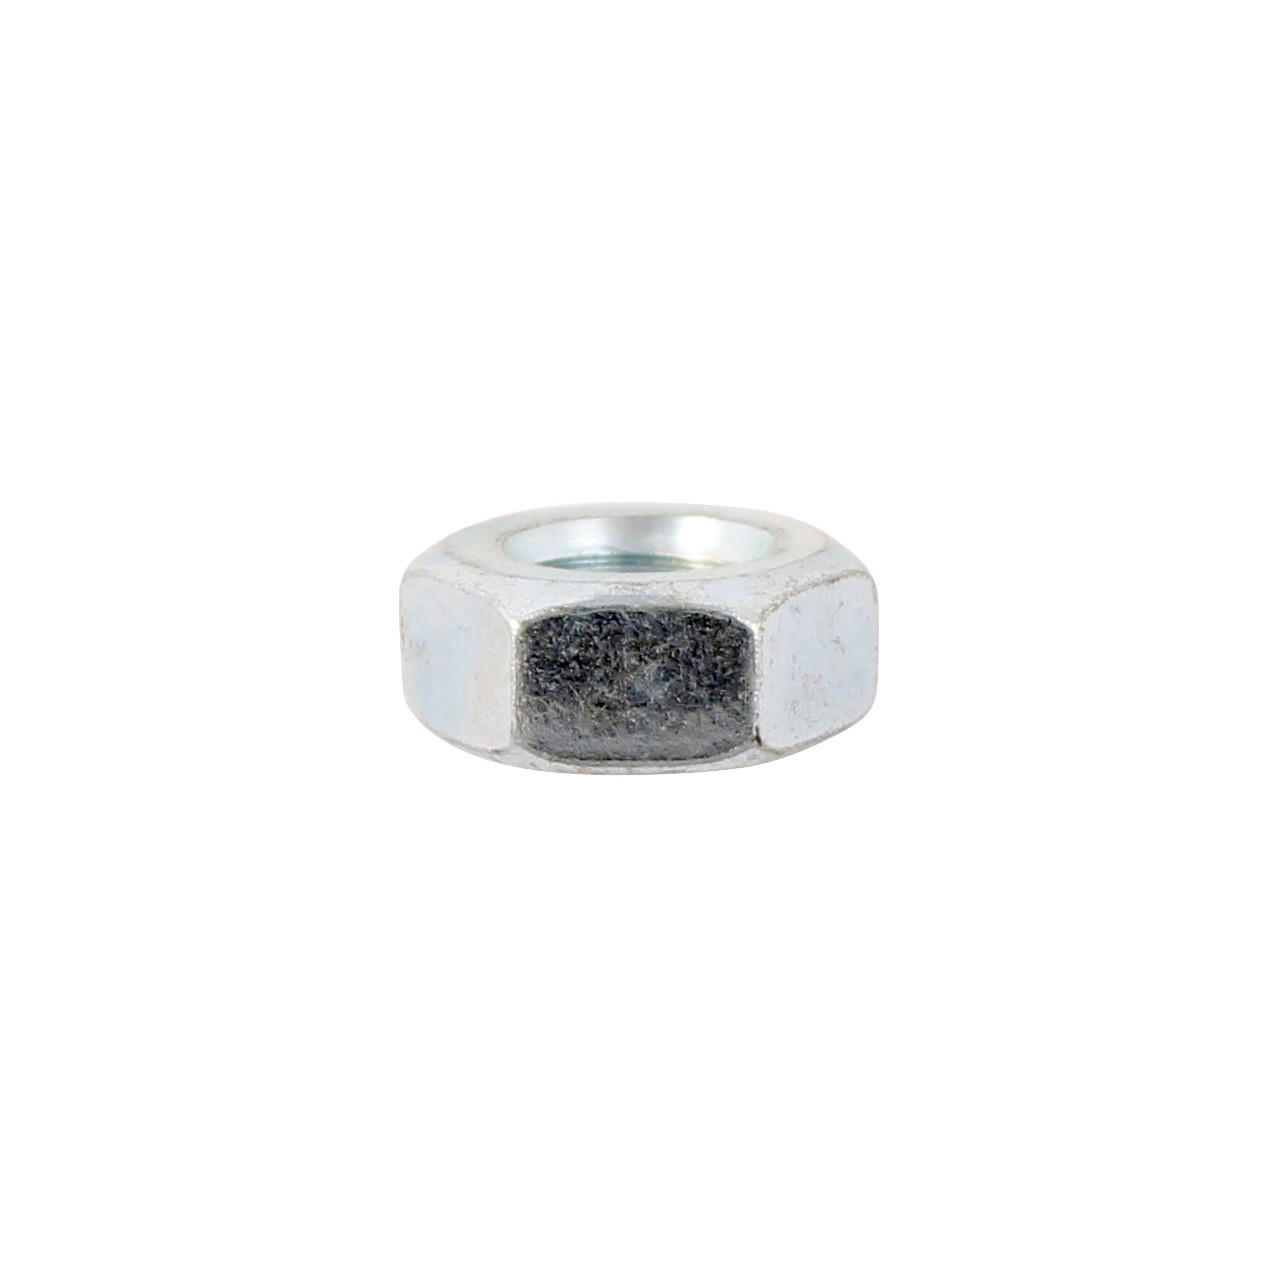 1O PACK HEX FULL NUTS BZP M10